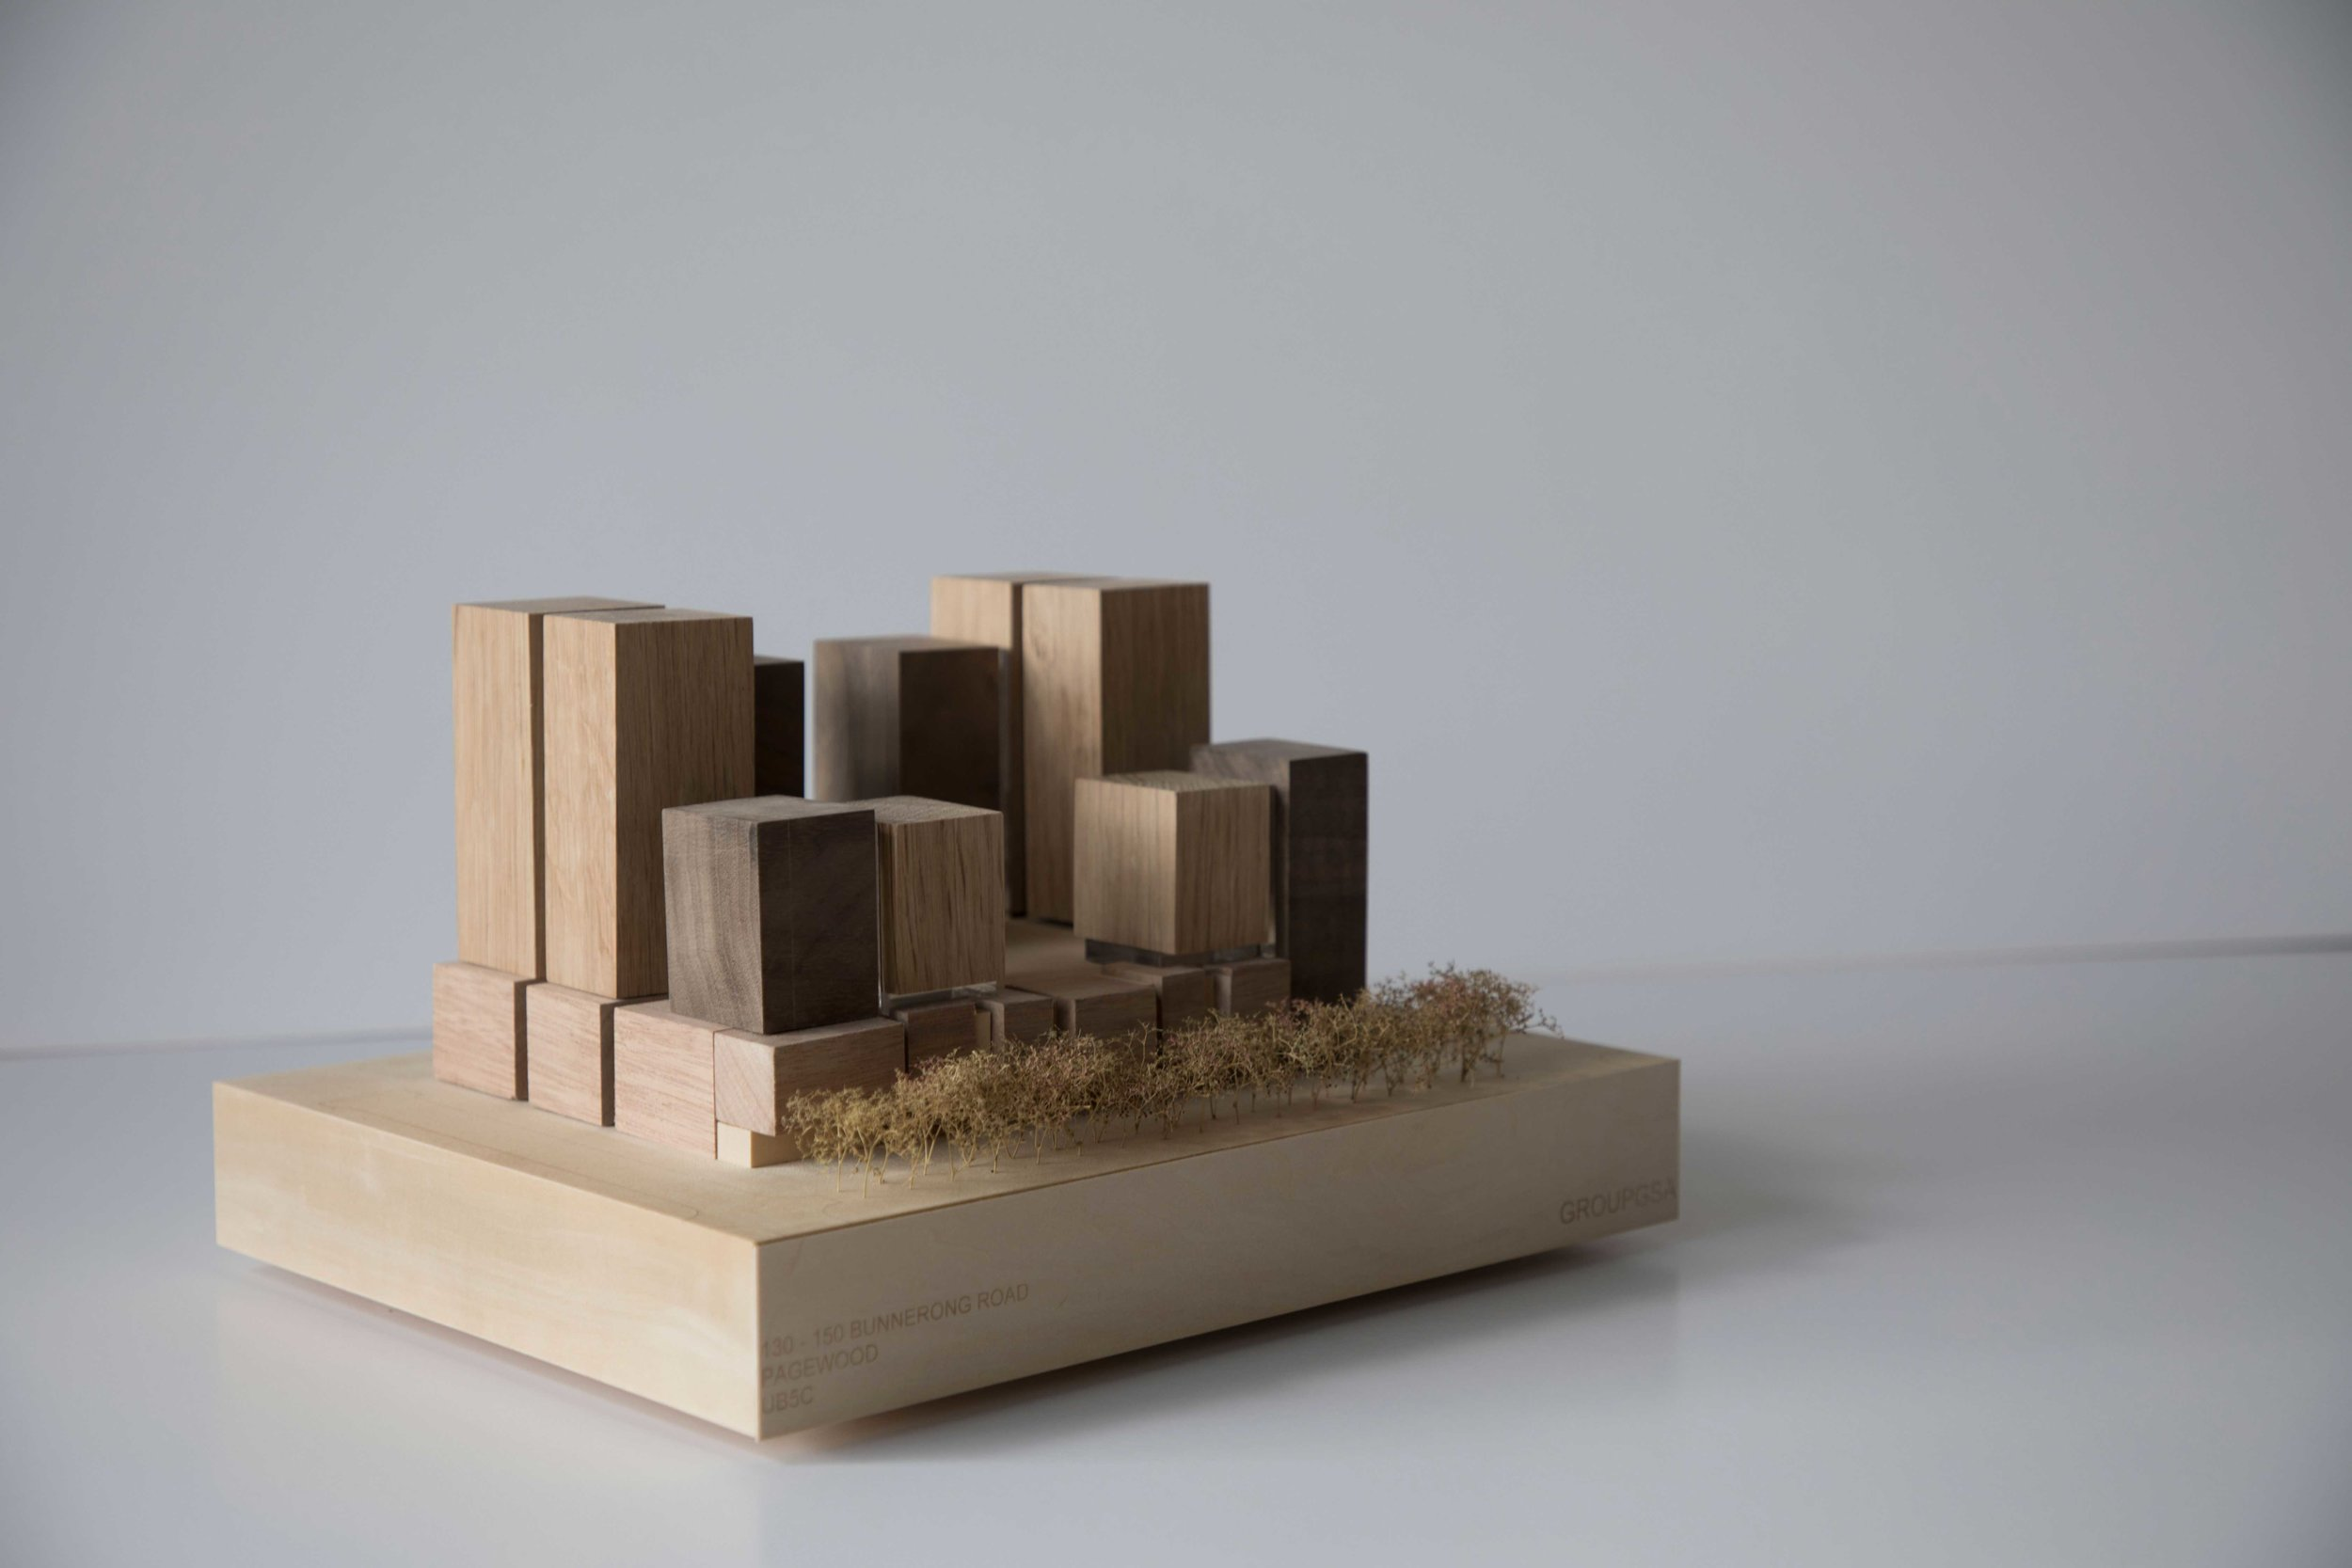 Make_models_Sydney_timber_scale_architecture_3.jpg